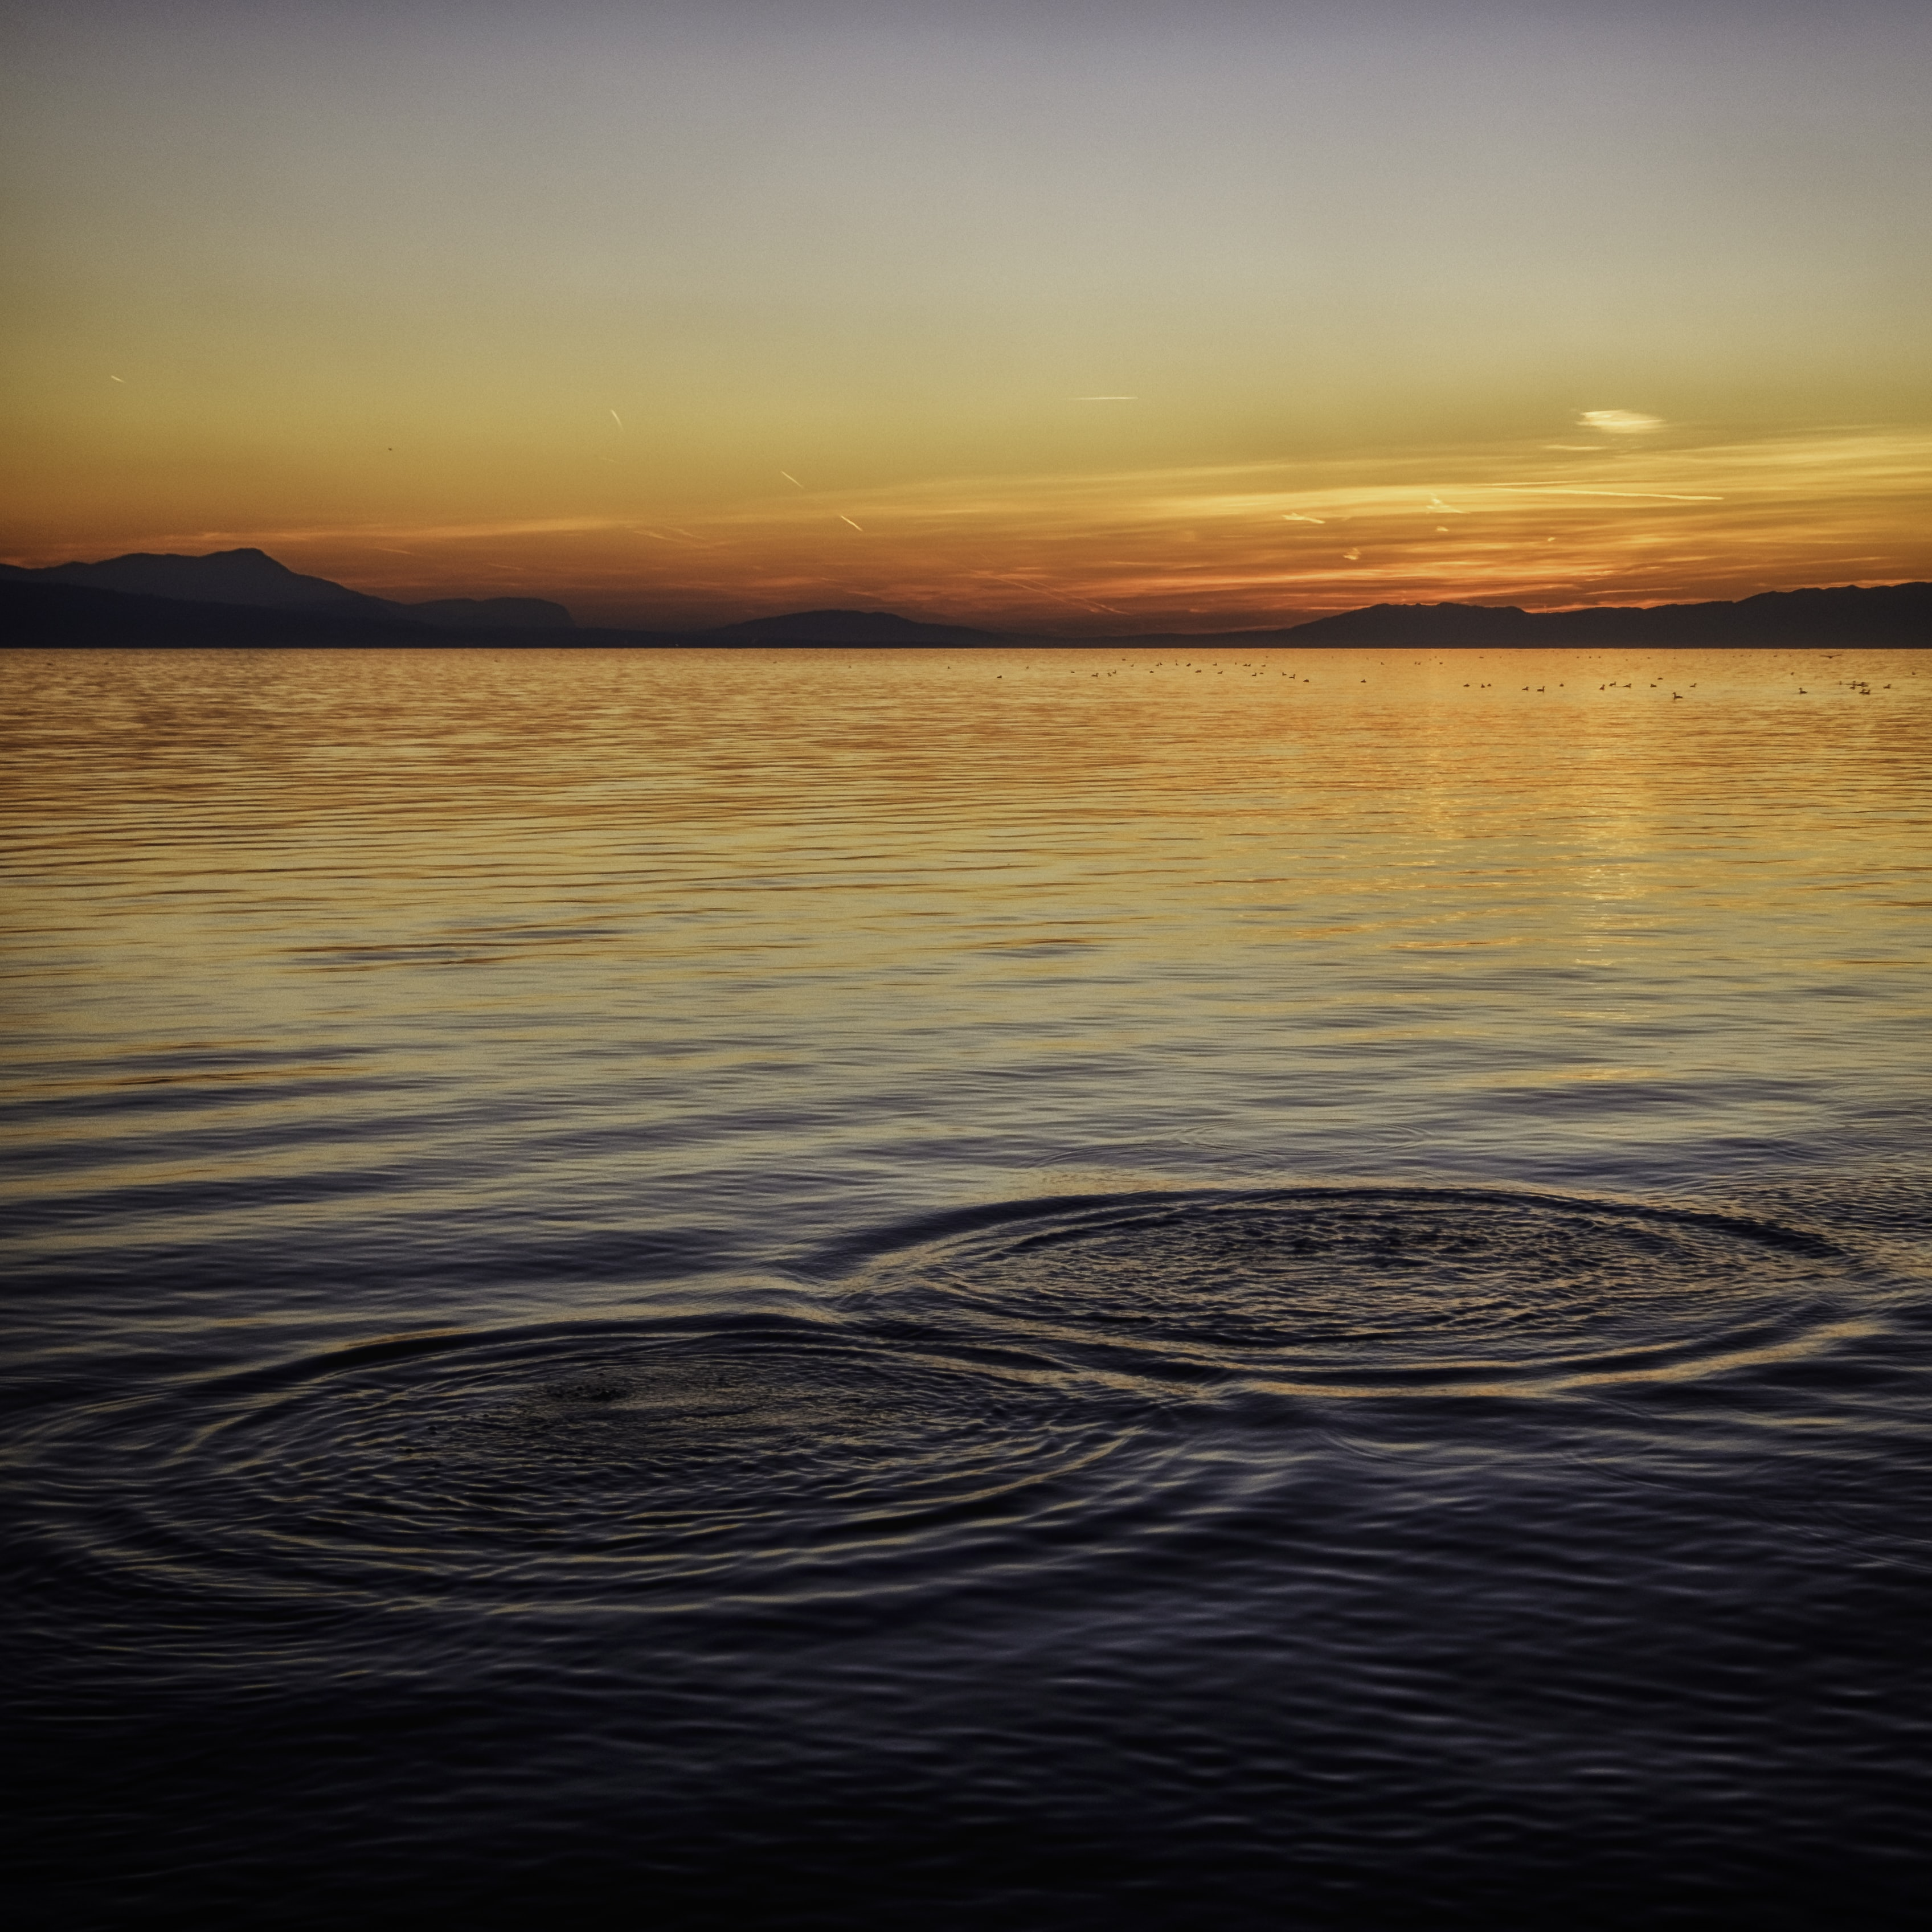 Ripples on the surface of water during sunset with hills in the distance